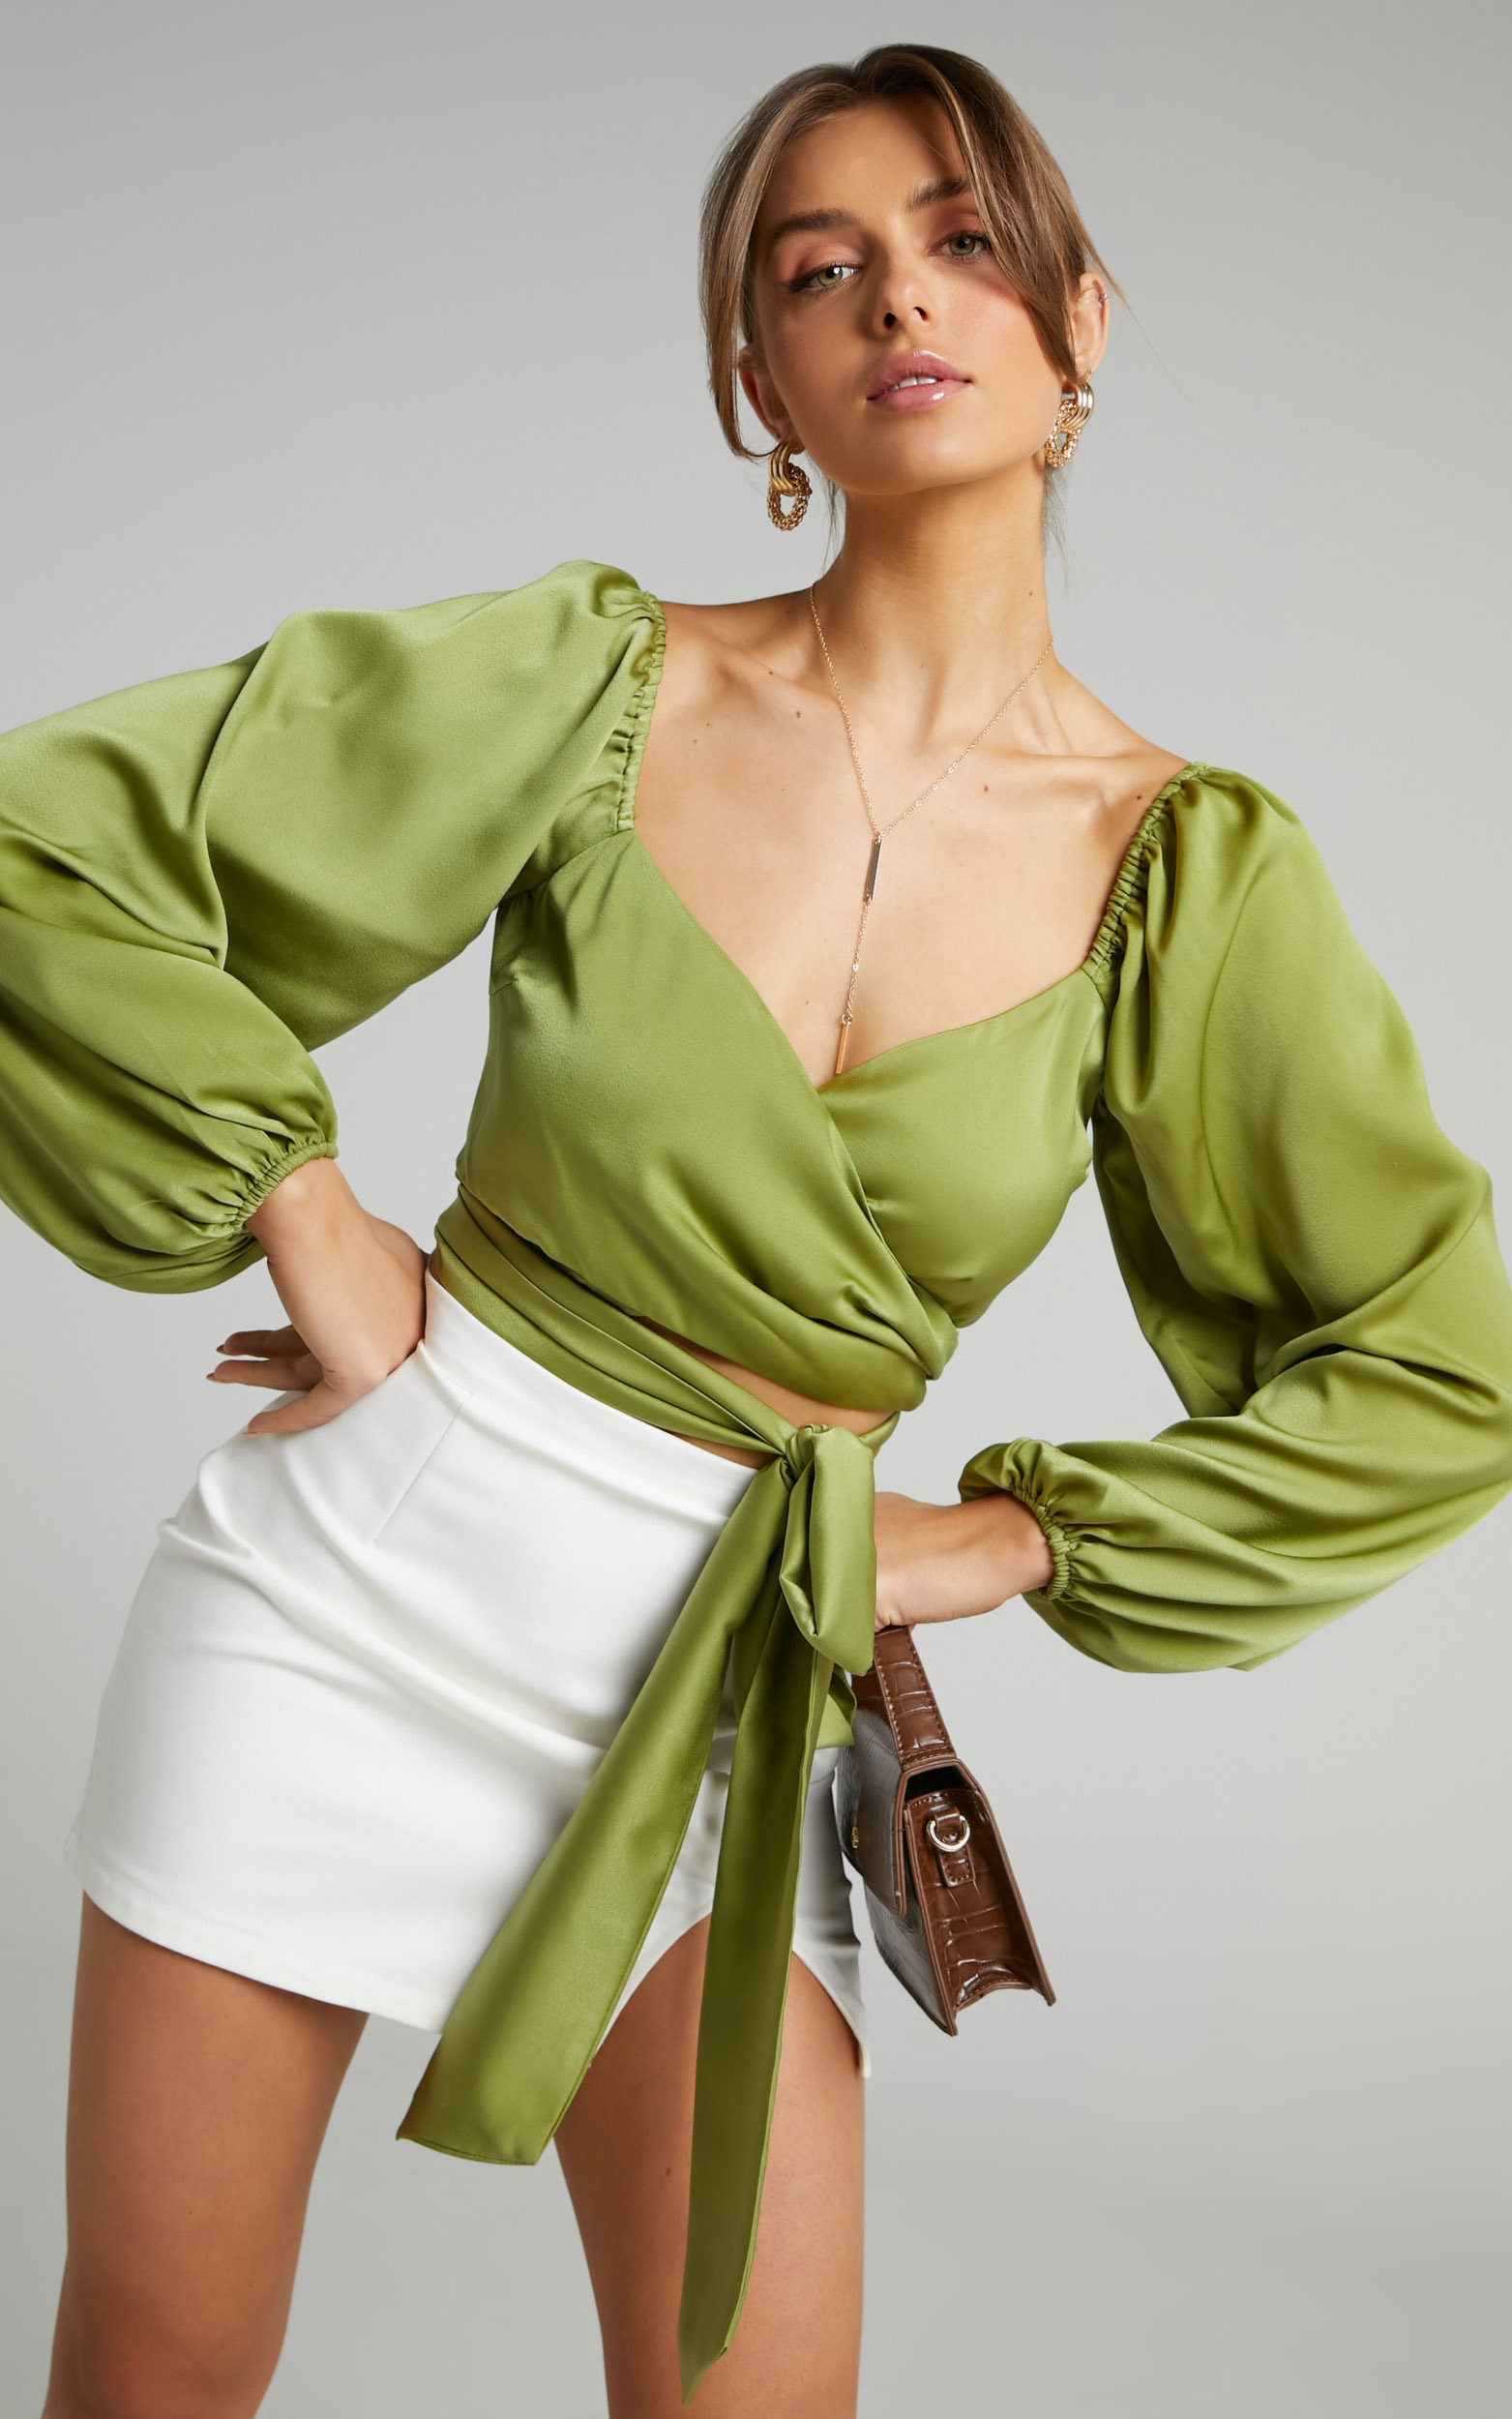 Toree Long Sleeve Tie Front Top in Olive - 06, GRN1, hi-res image number null